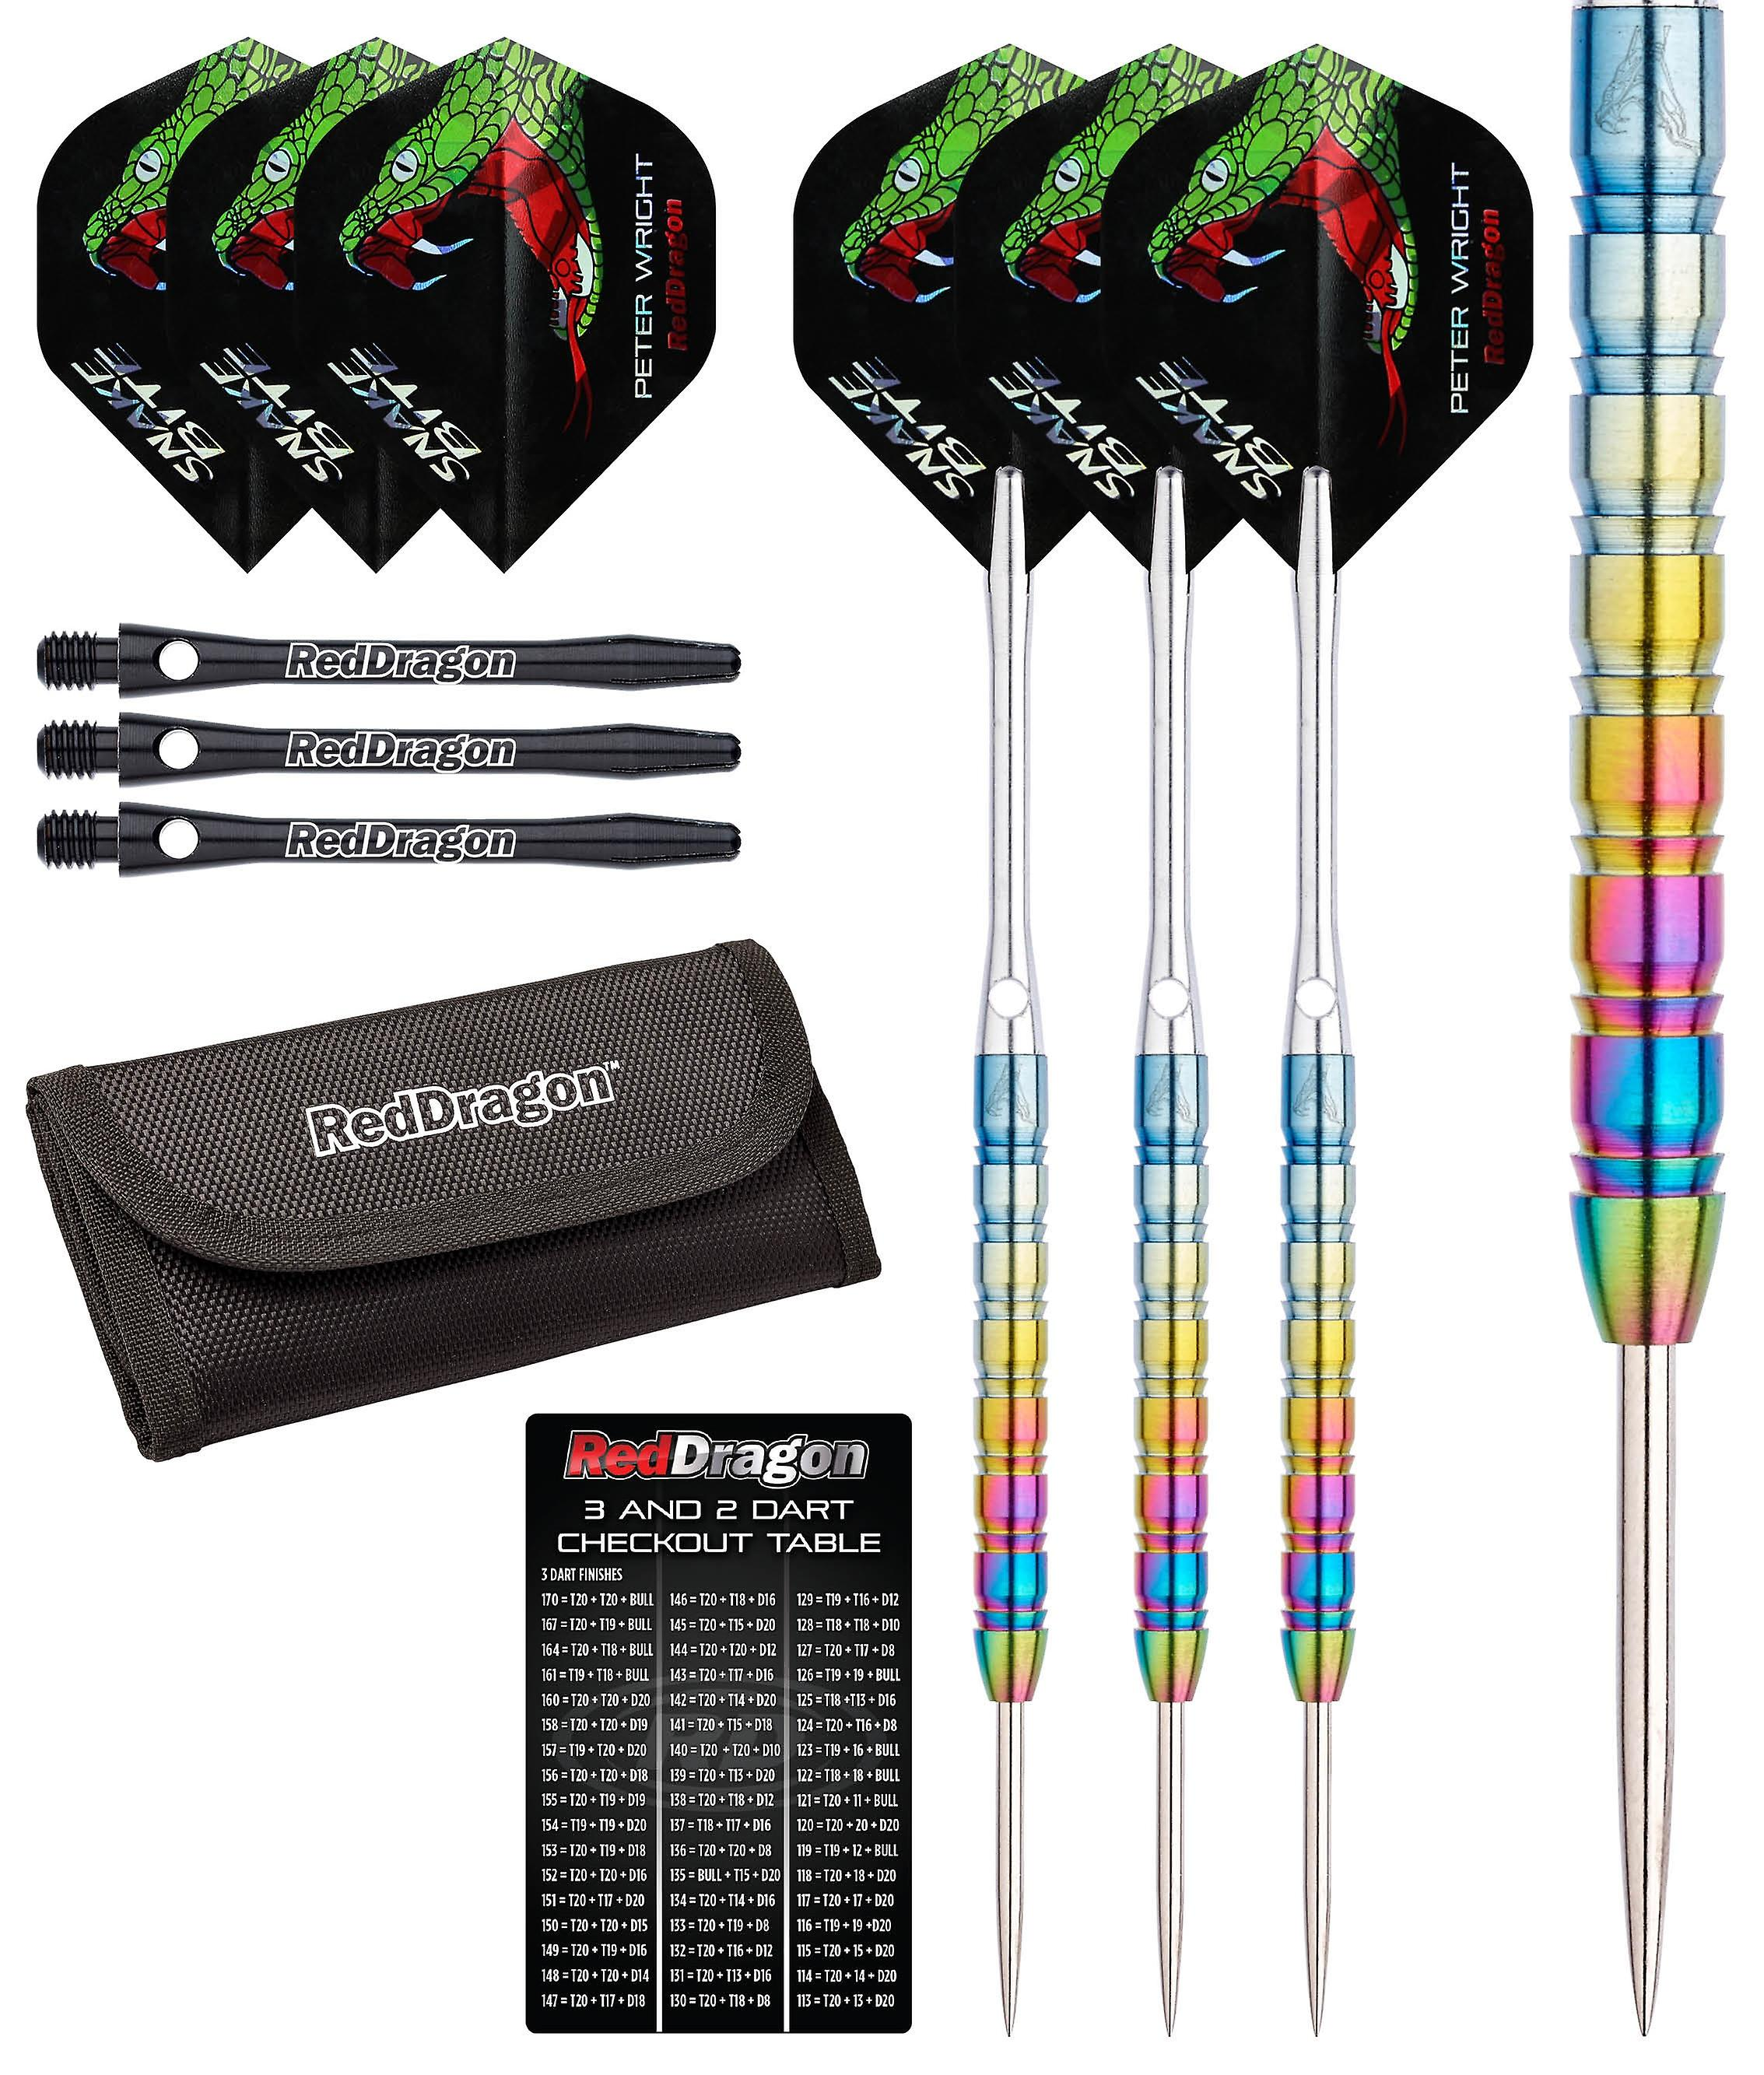 Red Dragon Peter Wright Snakebite 1: 22g - 85% Tungsten Steel Darts with Flights, Shafts, Wallet & Red Dragon Checkout Card